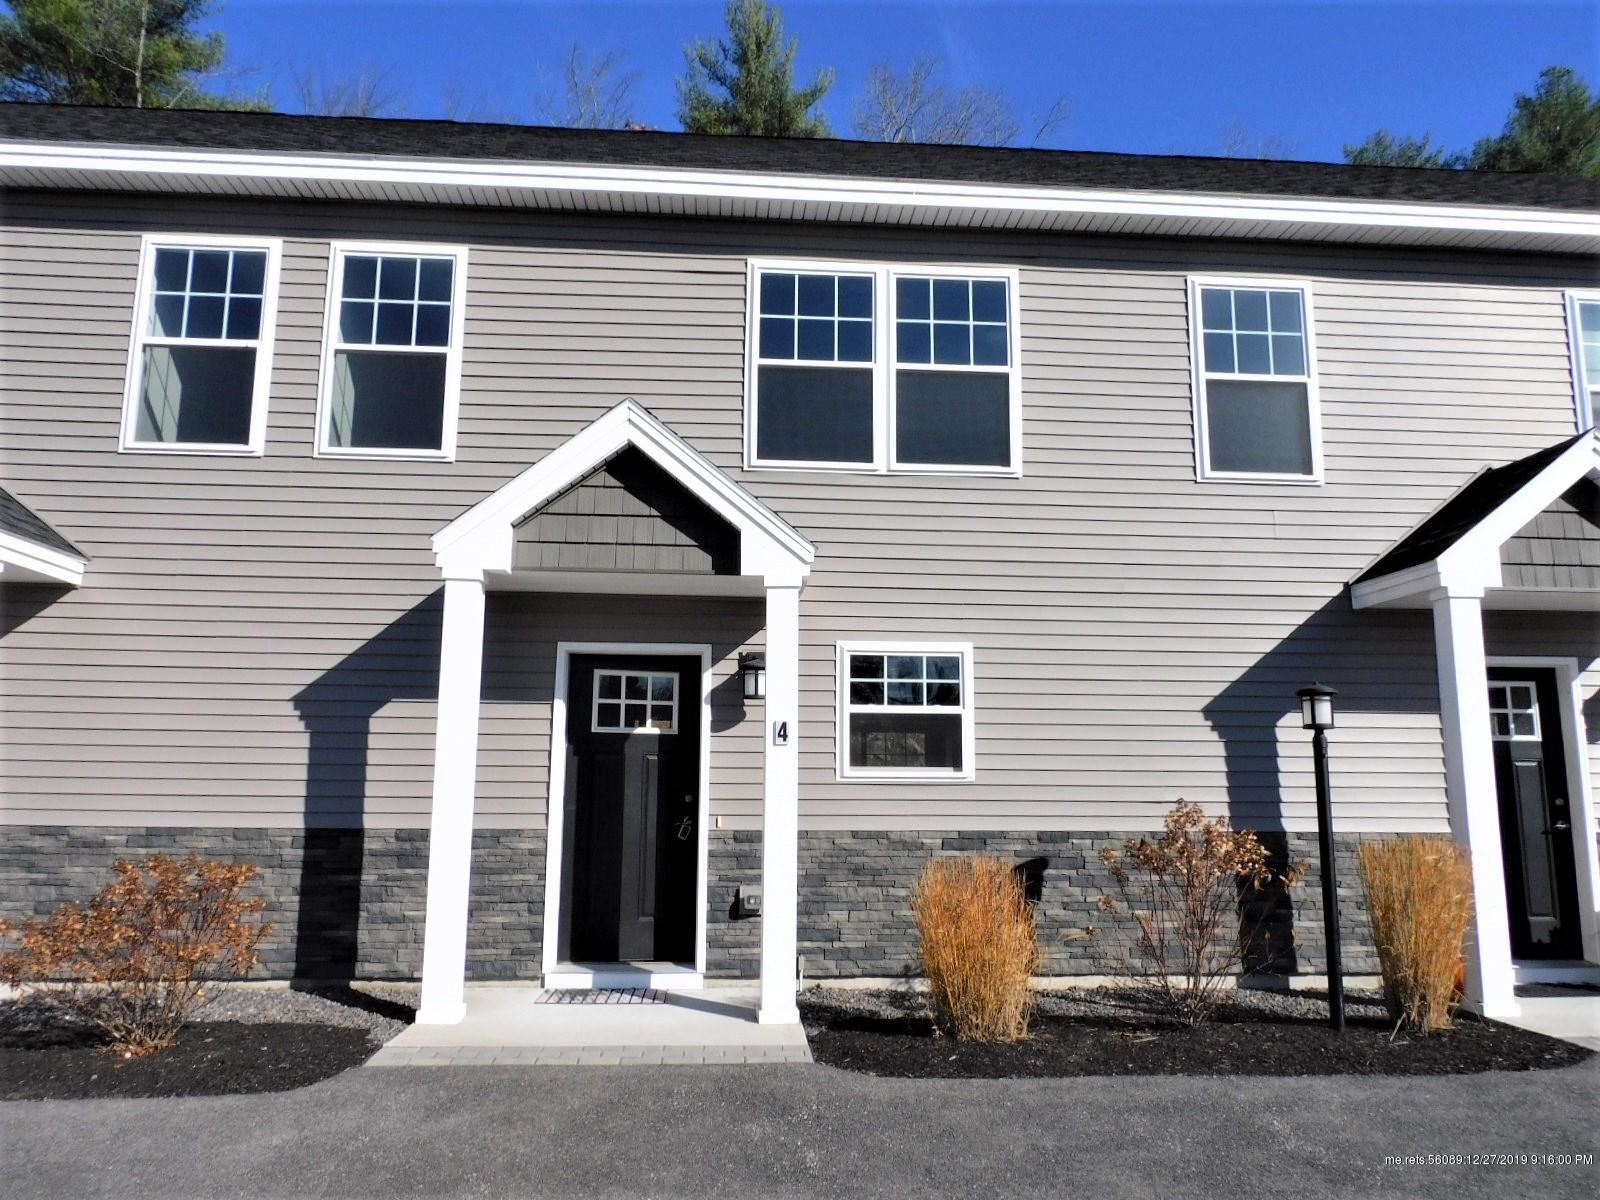 Photo of 499 Cumberland Street #4, Westbrook, ME 04092 (MLS # 1430506)